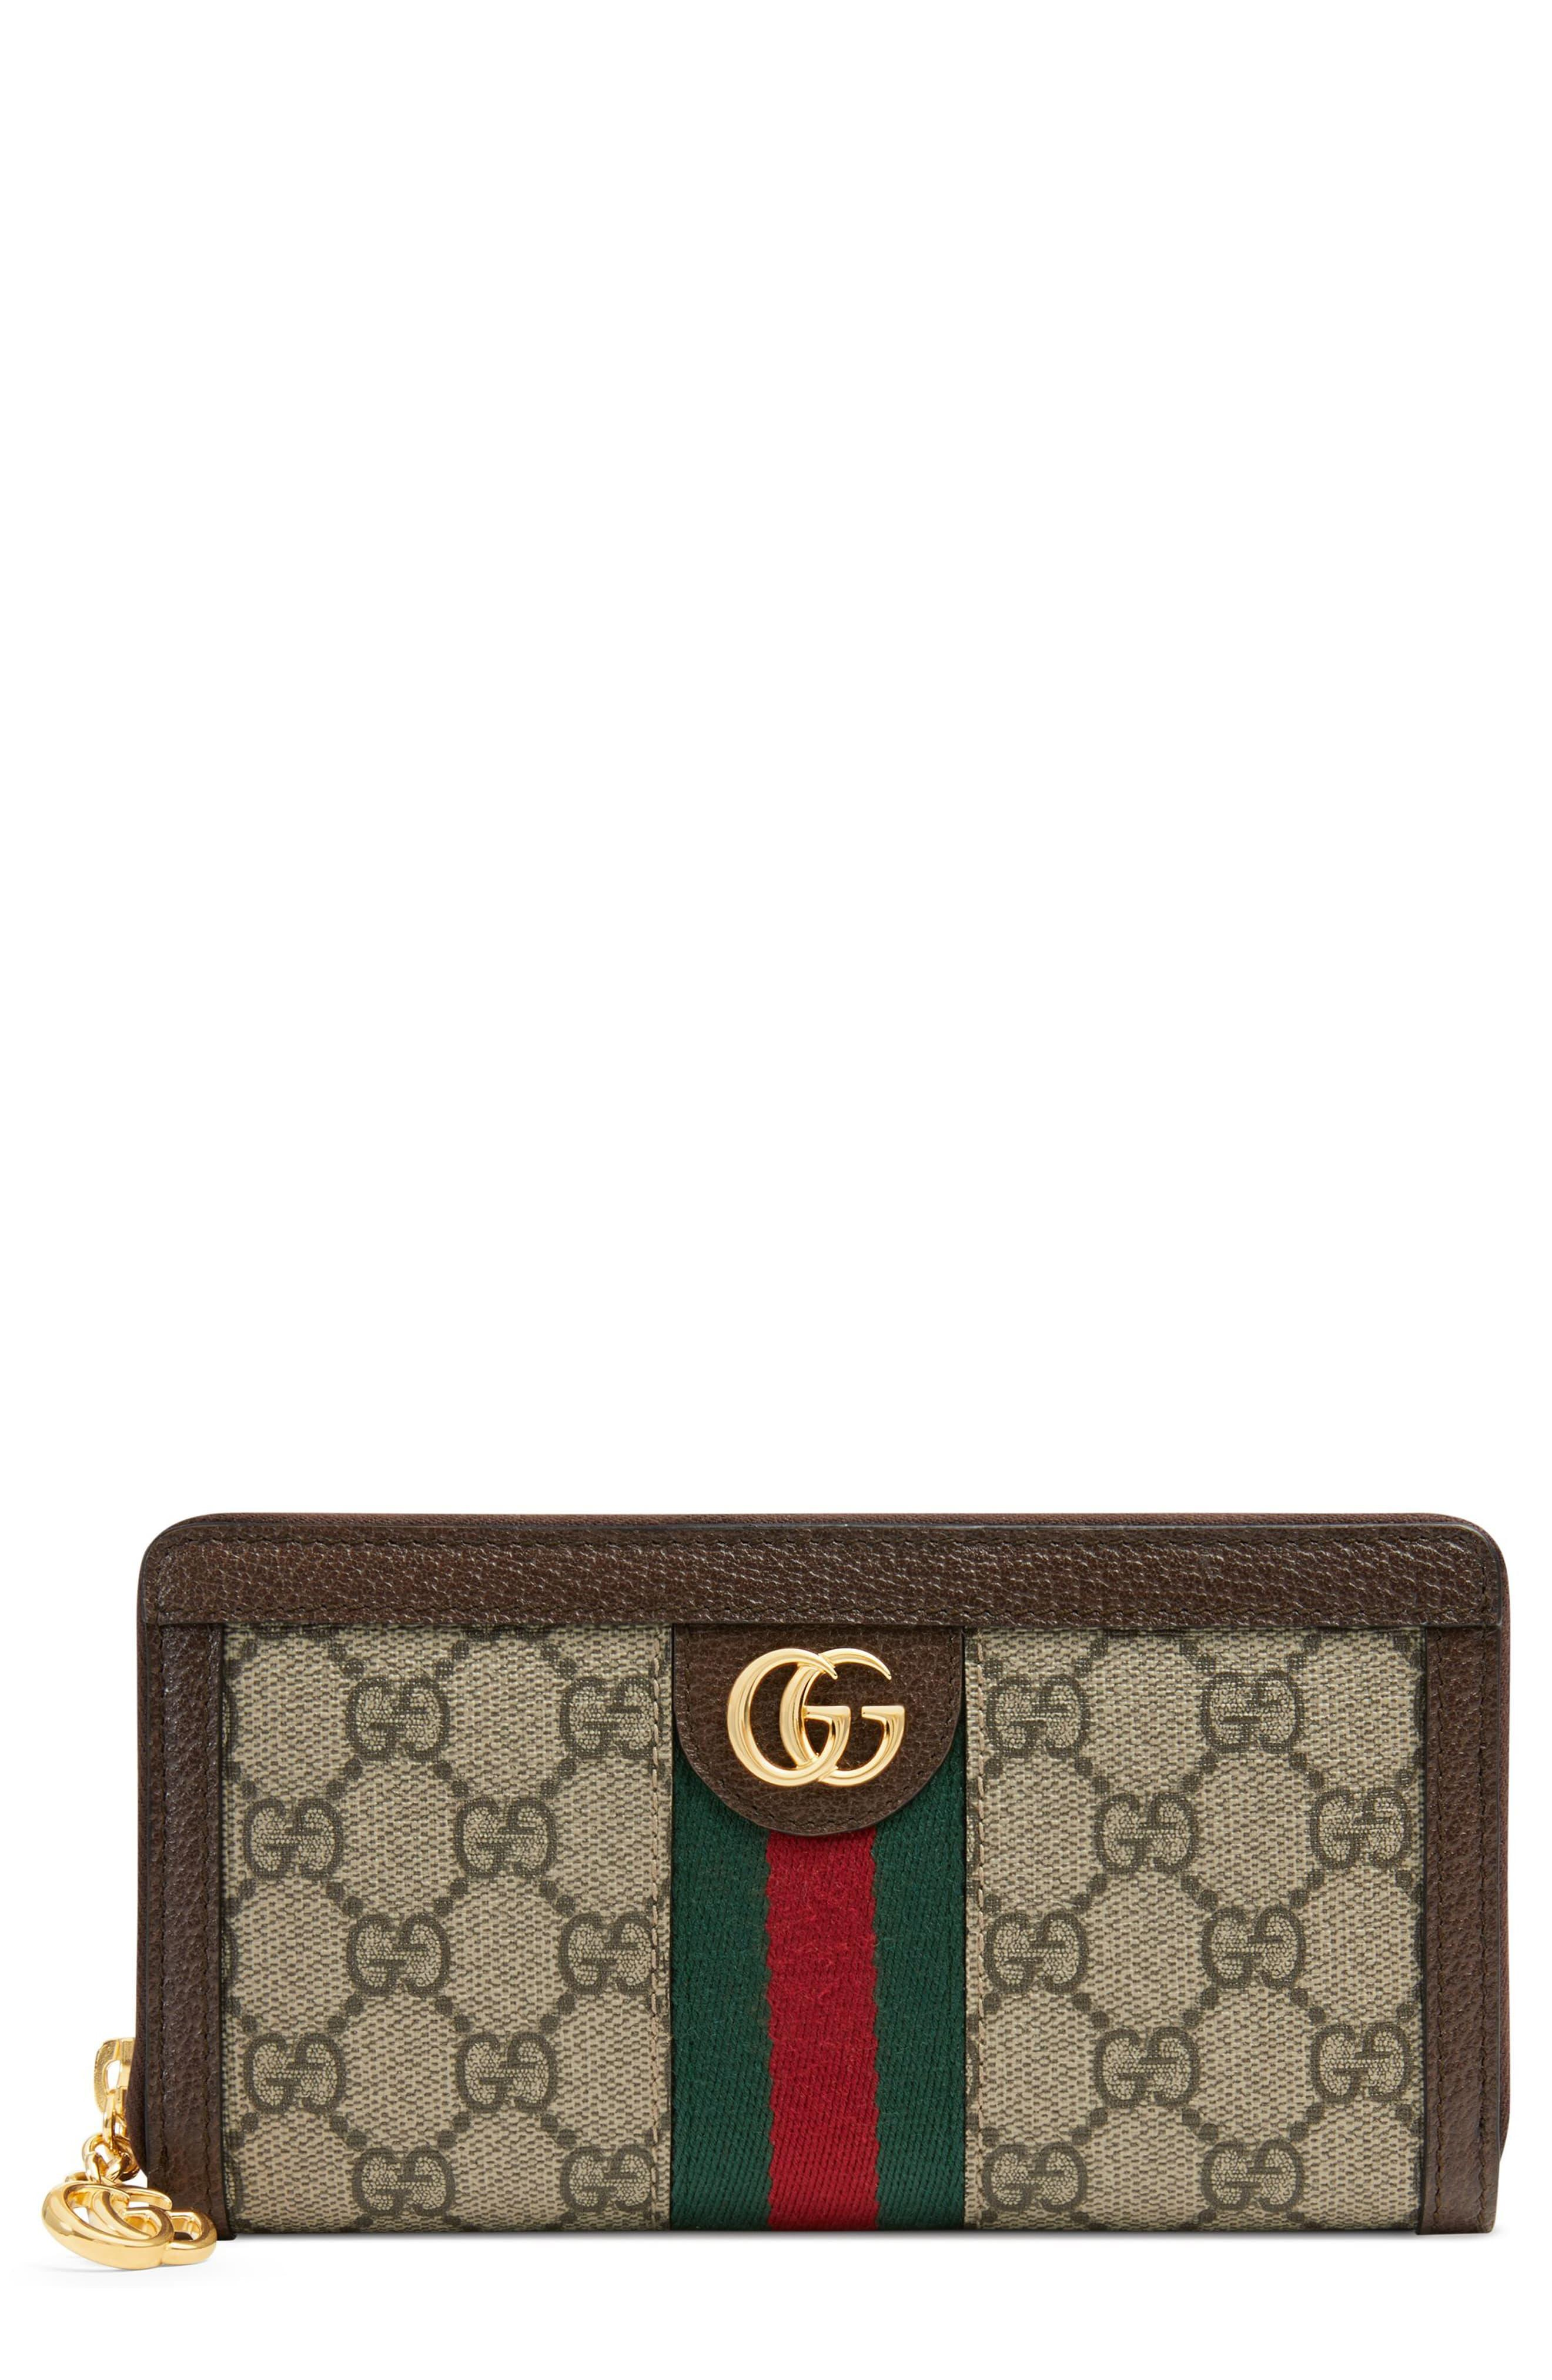 62a4a5058200 Gucci Ophidia Gg Supreme Zip-around Wallet in Natural - Lyst